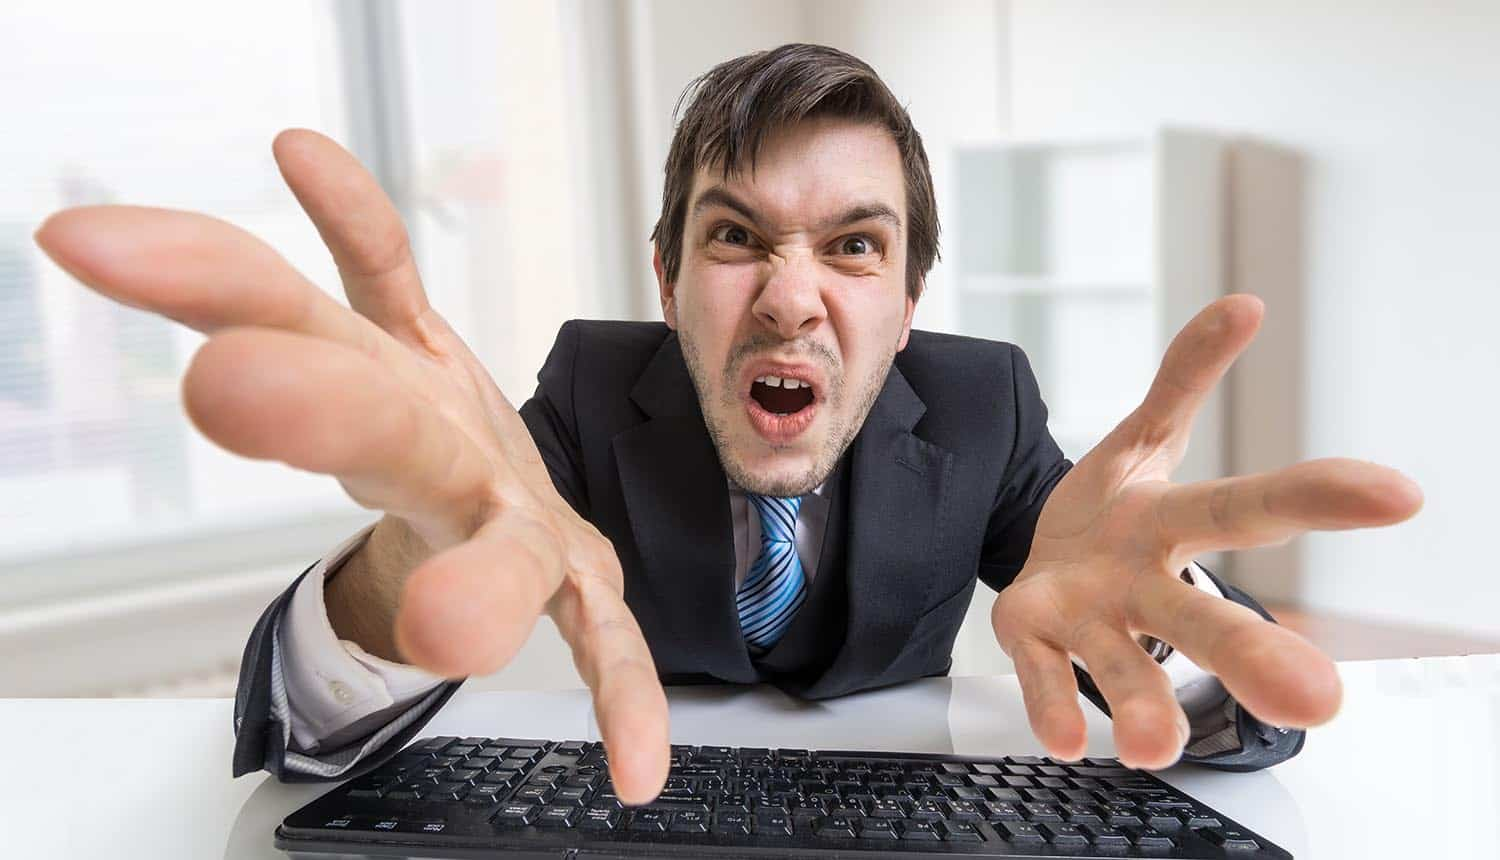 Confused angry businessman working with computer showing need for security not to hold back productivity